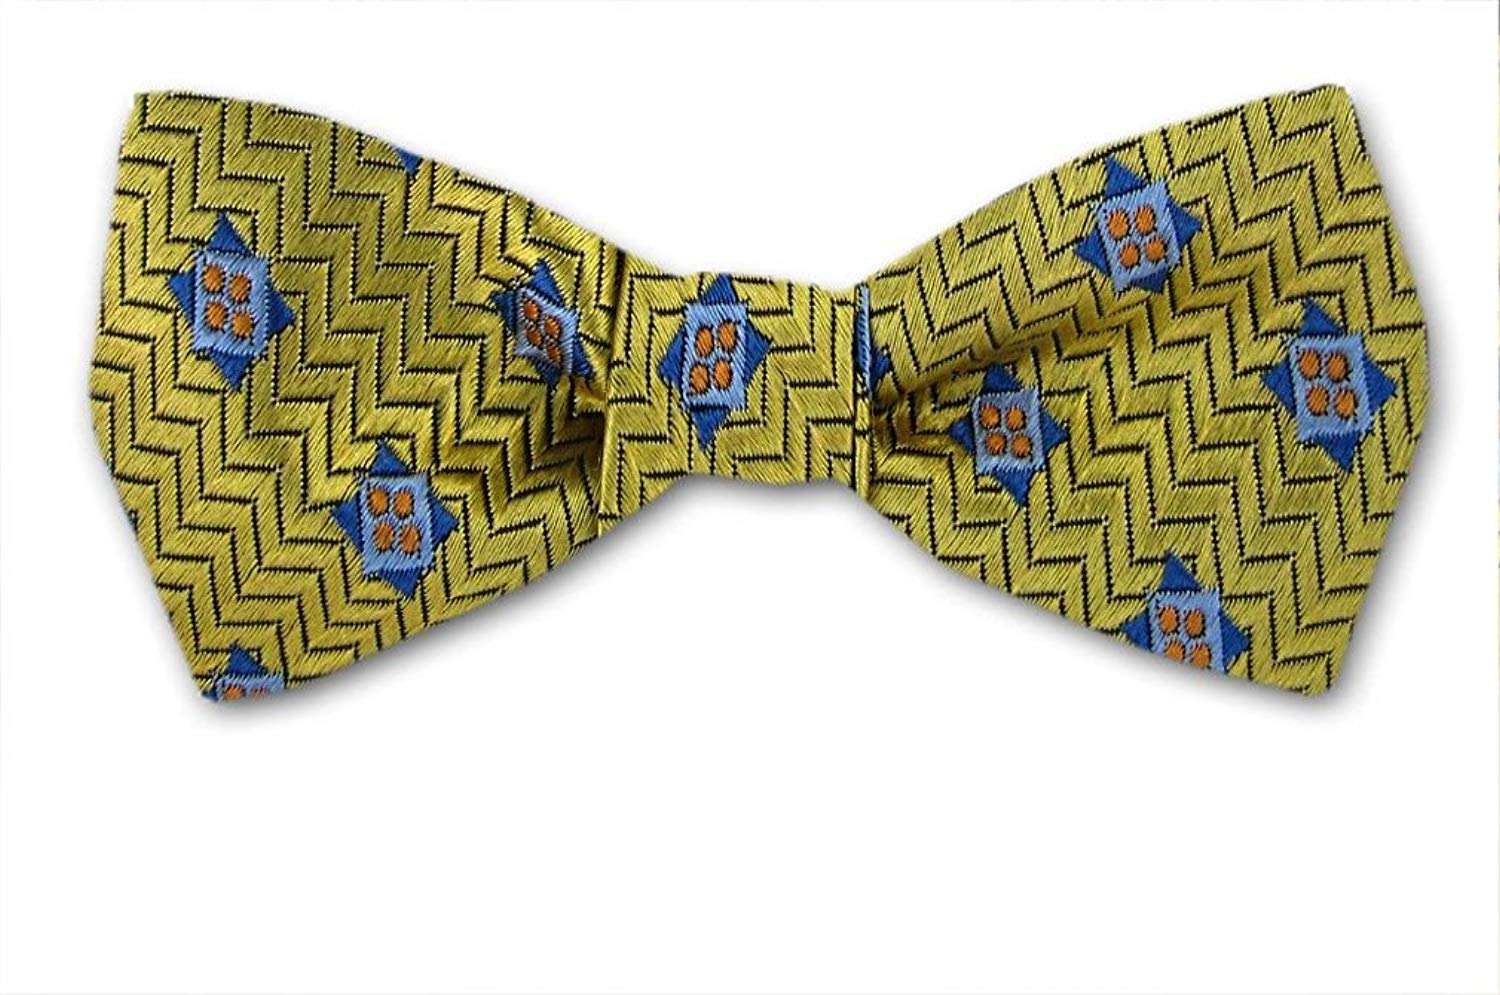 f1f6e9038cae Cheap Gold Bow Tie, find Gold Bow Tie deals on line at Alibaba.com